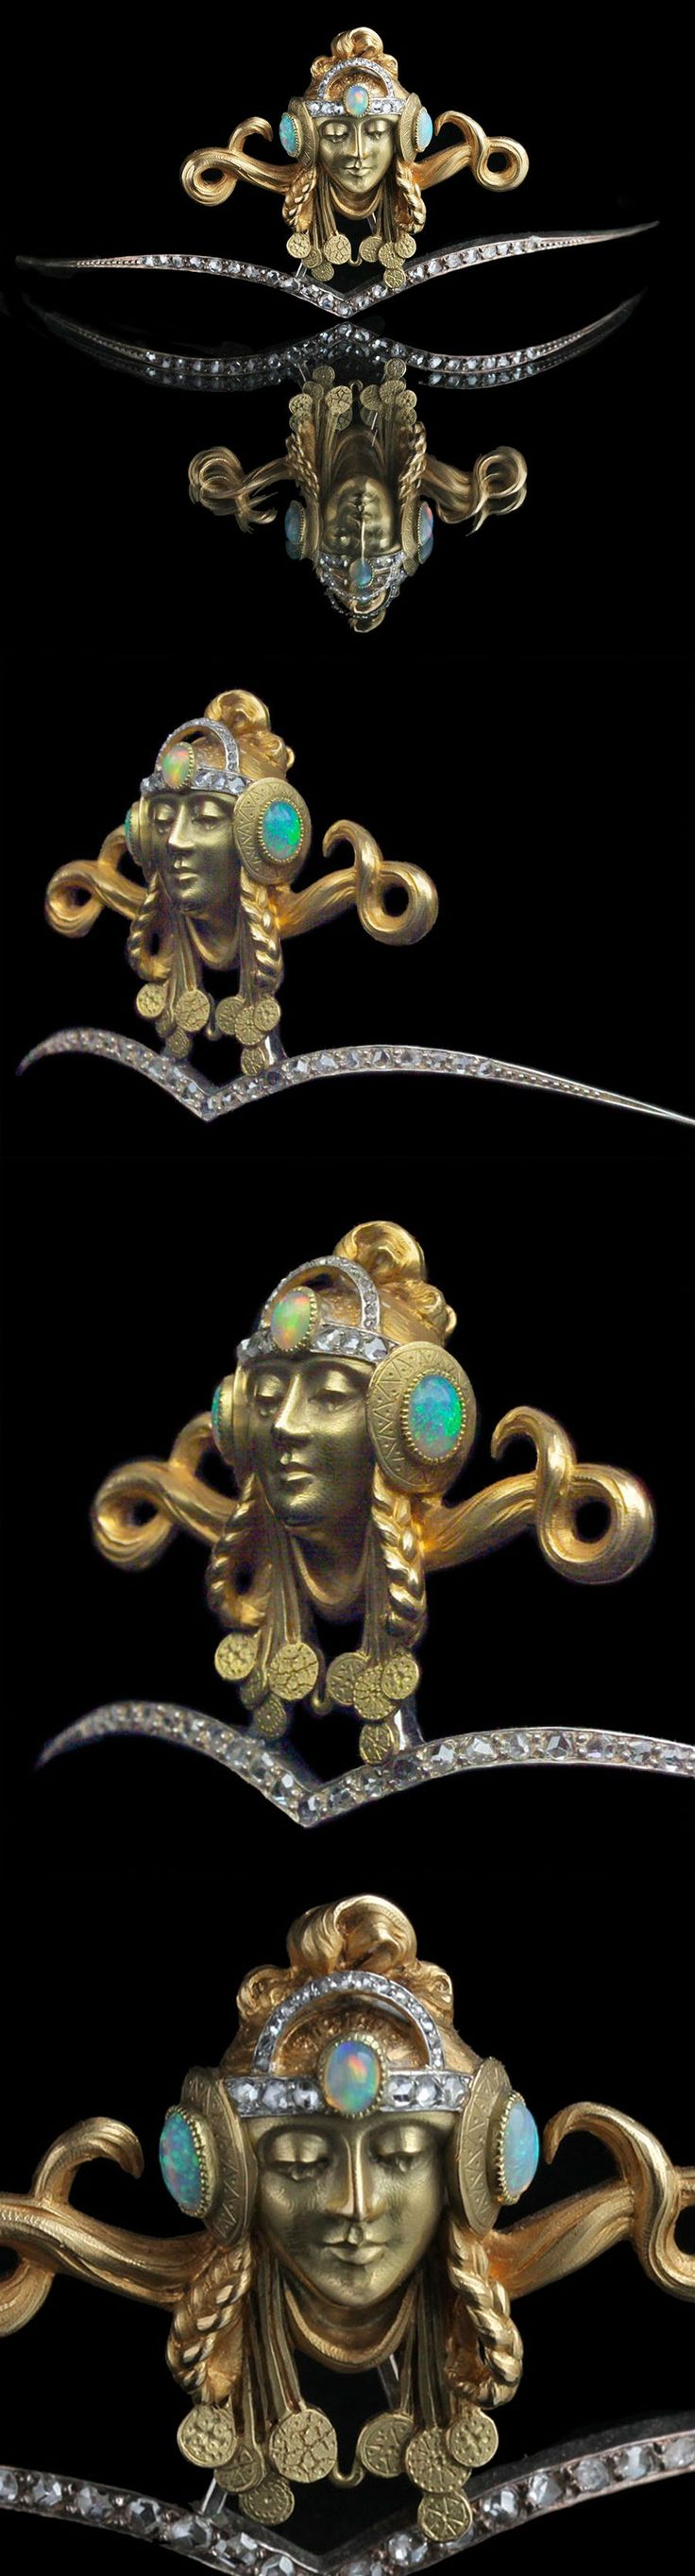 ART NOUVEAU DIADEM Mucha style Byzantine Princess Gold Opal Diamond H: 4.2 cm (1.65 in) W: 10.6 cm (4.17 in) Marks: Crab mark French, c.1900 Fitted Case The diadem can also be worn as a pendant by unscrewing the reverse, The diadem is unmarked, but undoubtedly French and possibly by Georges Fouquet or Maison Vever. http://www.tademagallery.com/content.htm | JV